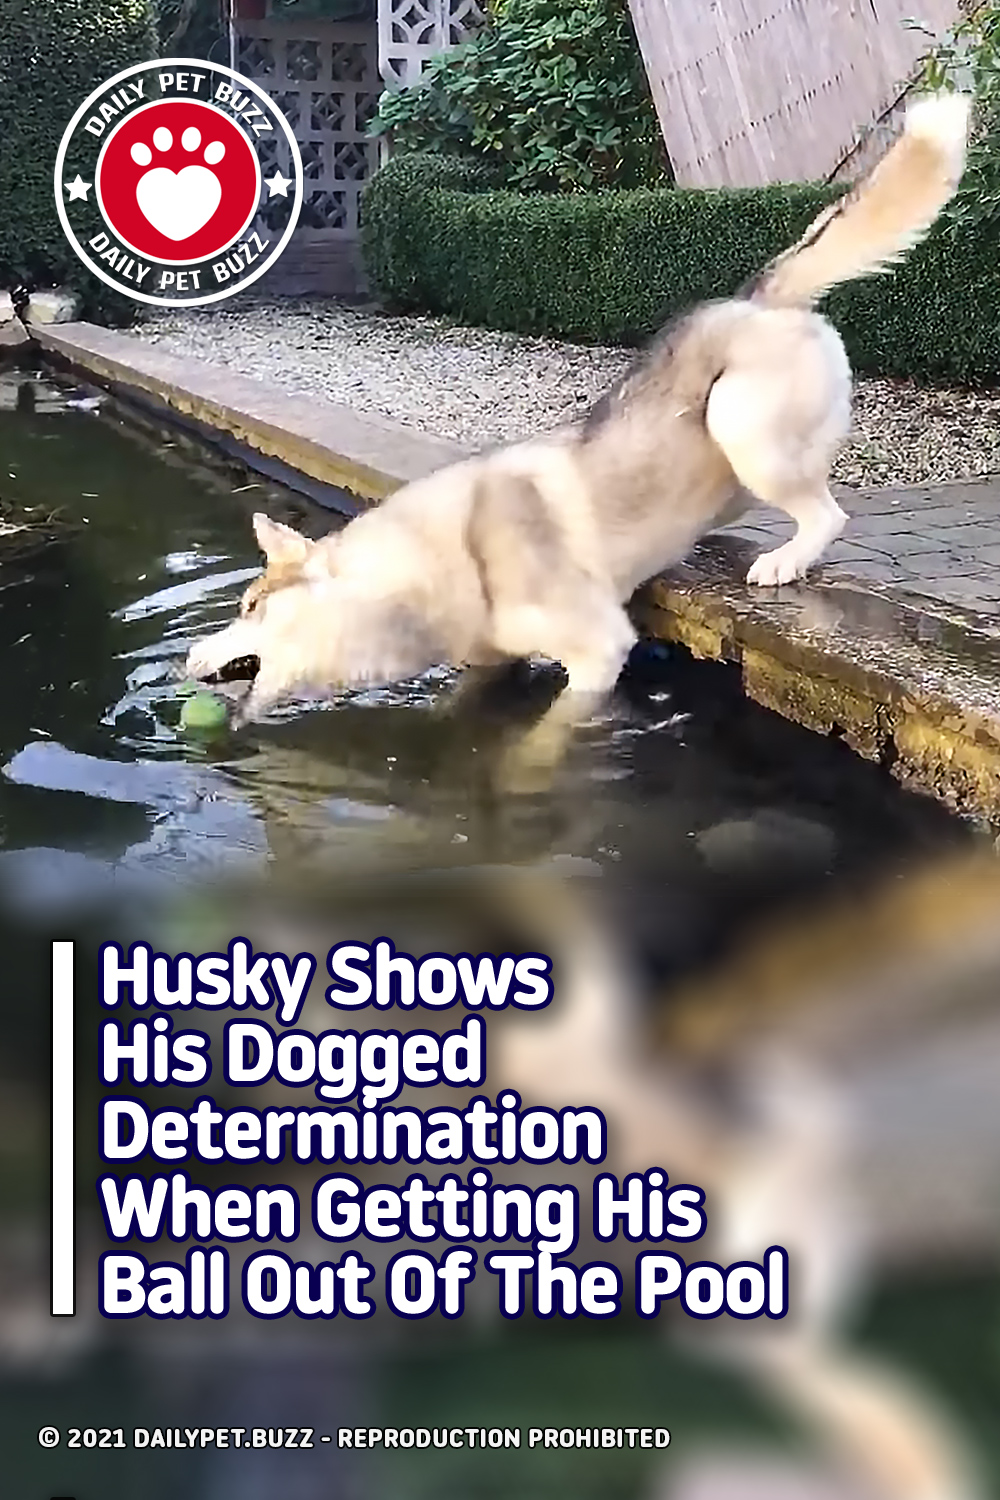 Husky Shows His Dogged Determination When Getting His Ball Out Of The Pool